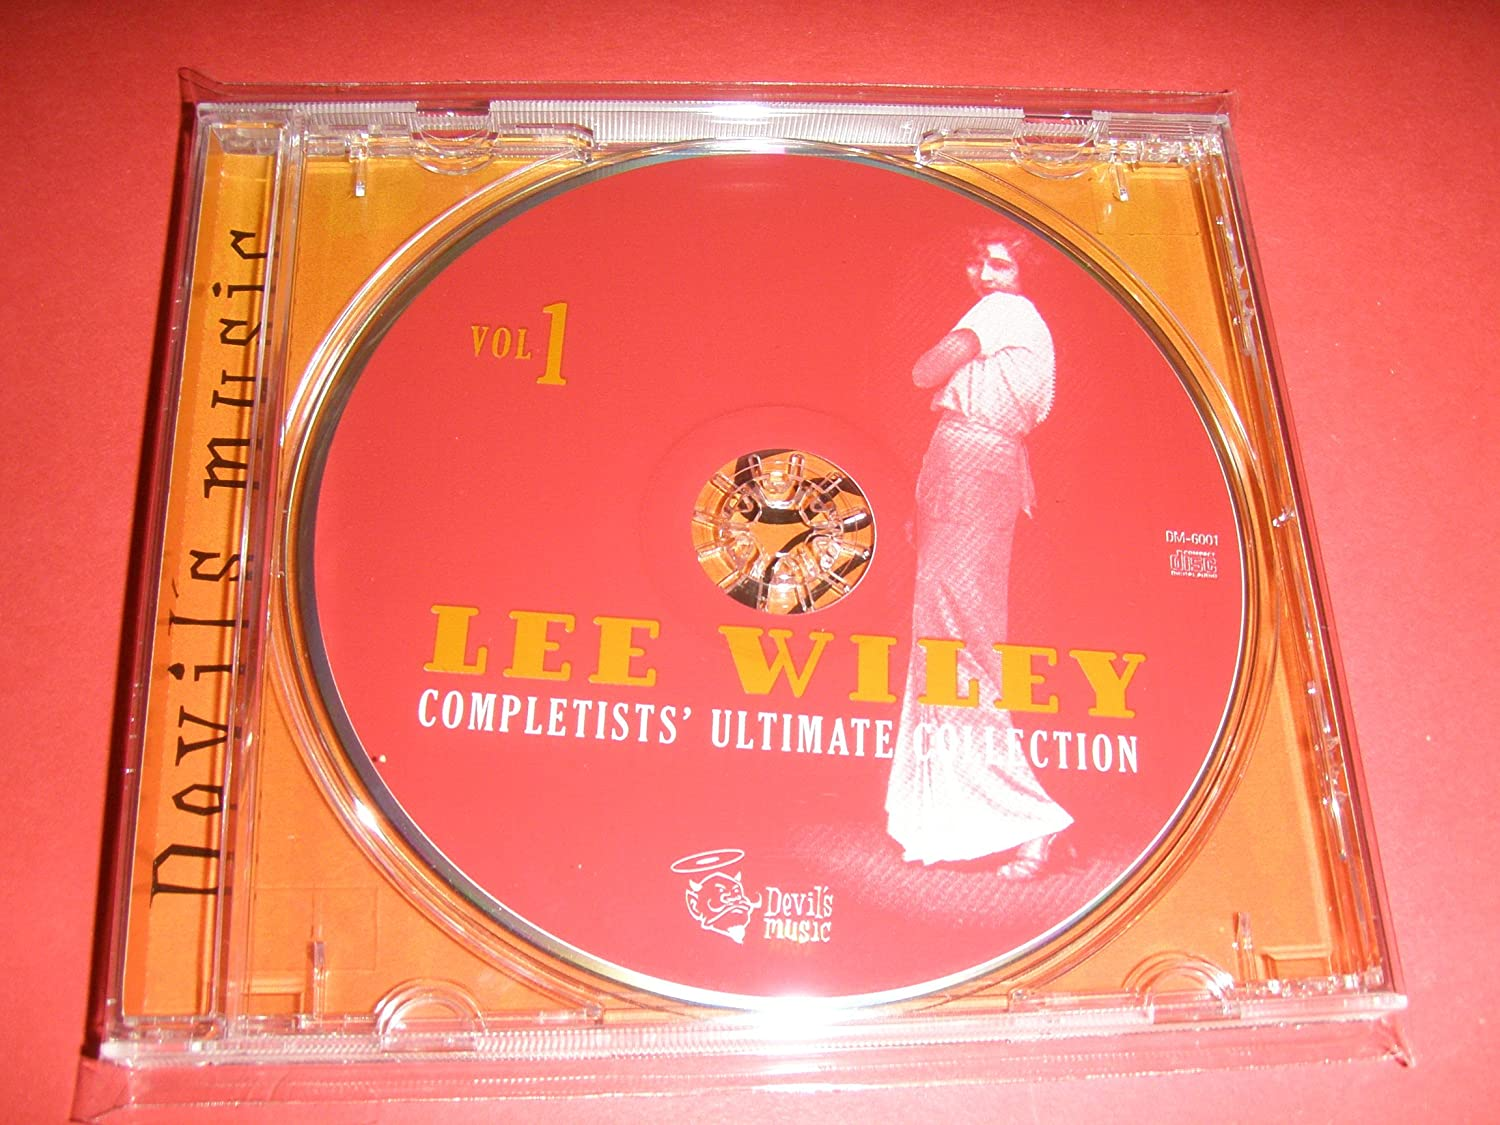 Completists' Ultimate Collection Vol. 1